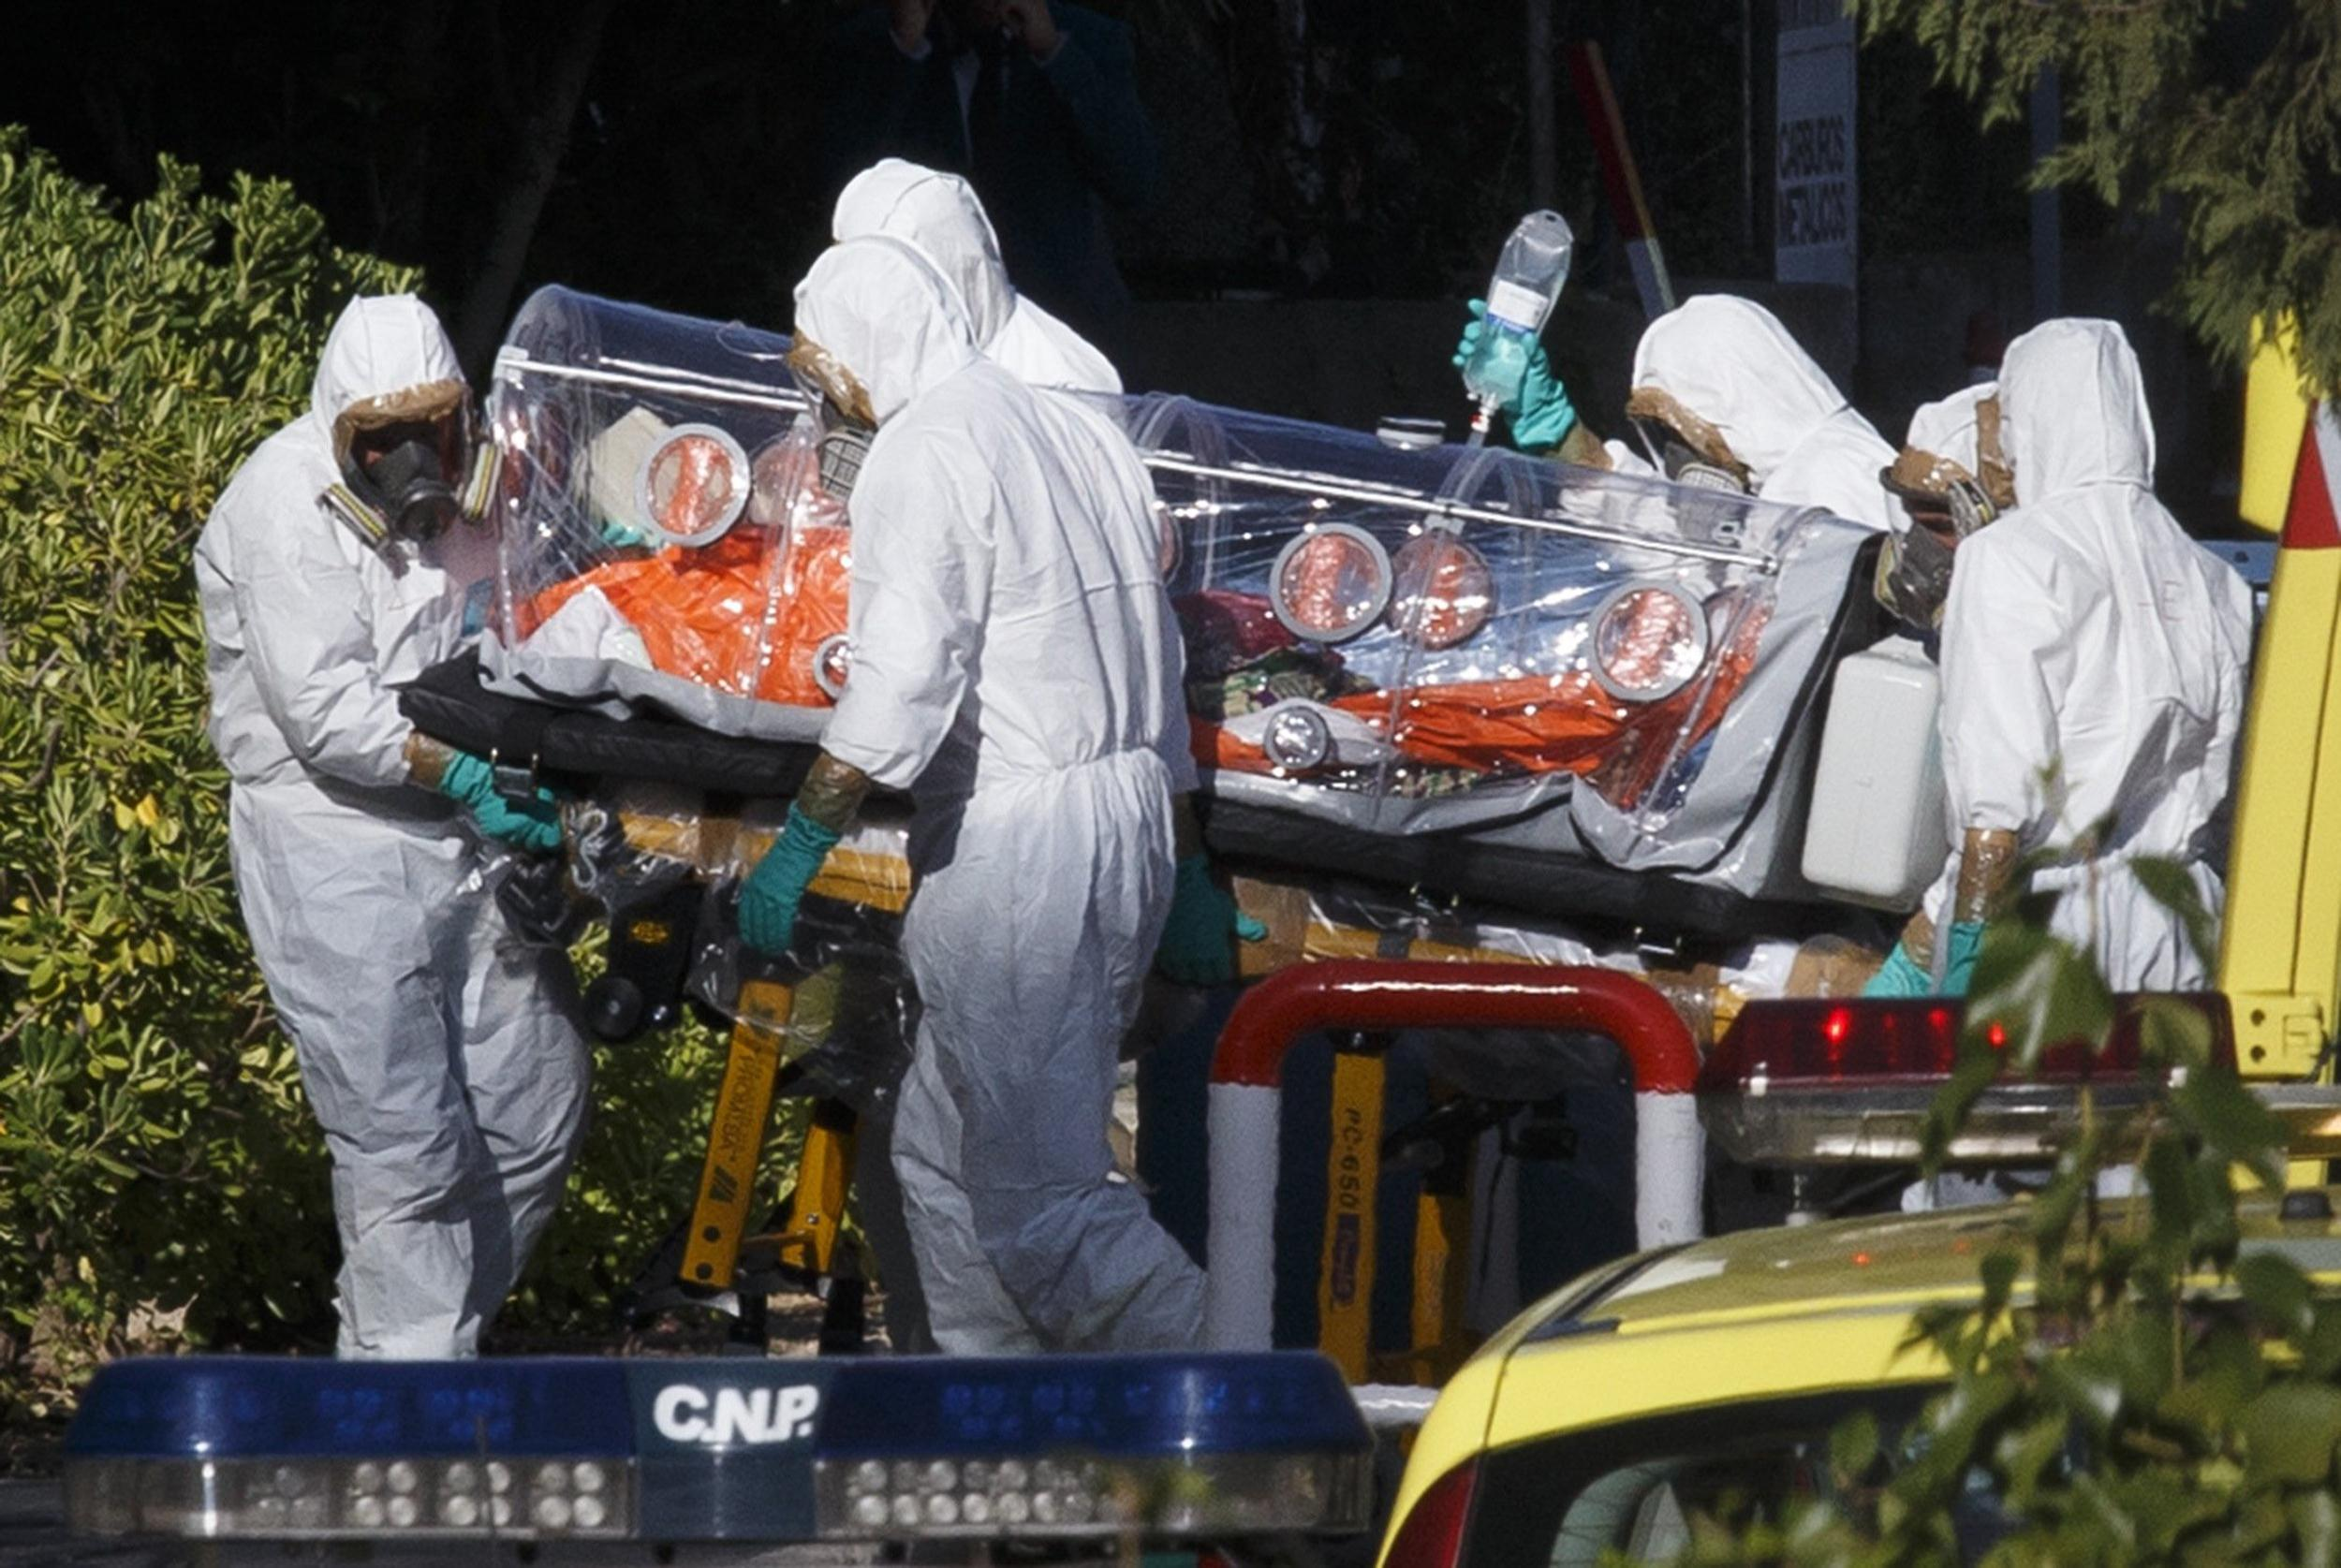 https://i2.wp.com/media3.s-nbcnews.com/i/newscms/2014_32/605416/140807-ebola-spain-7a_467e254a065a484d2c28f83b36a56d08.jpg